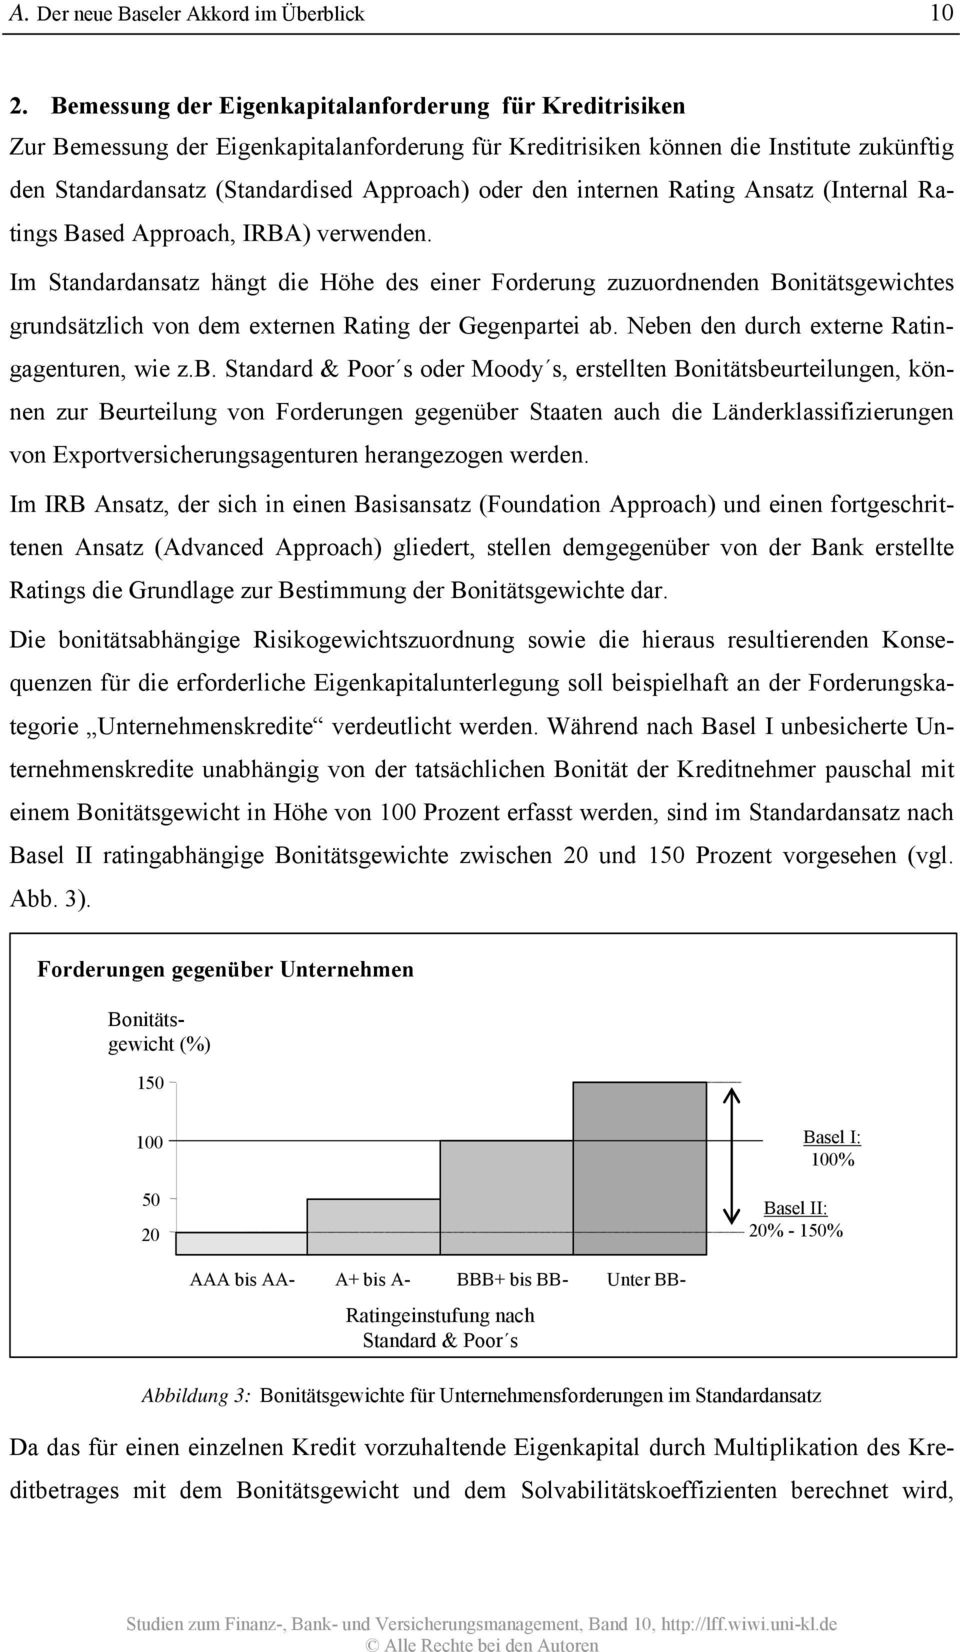 internen Rating Ansatz (Internal Ratings Based Approach, IRBA) verwenden.